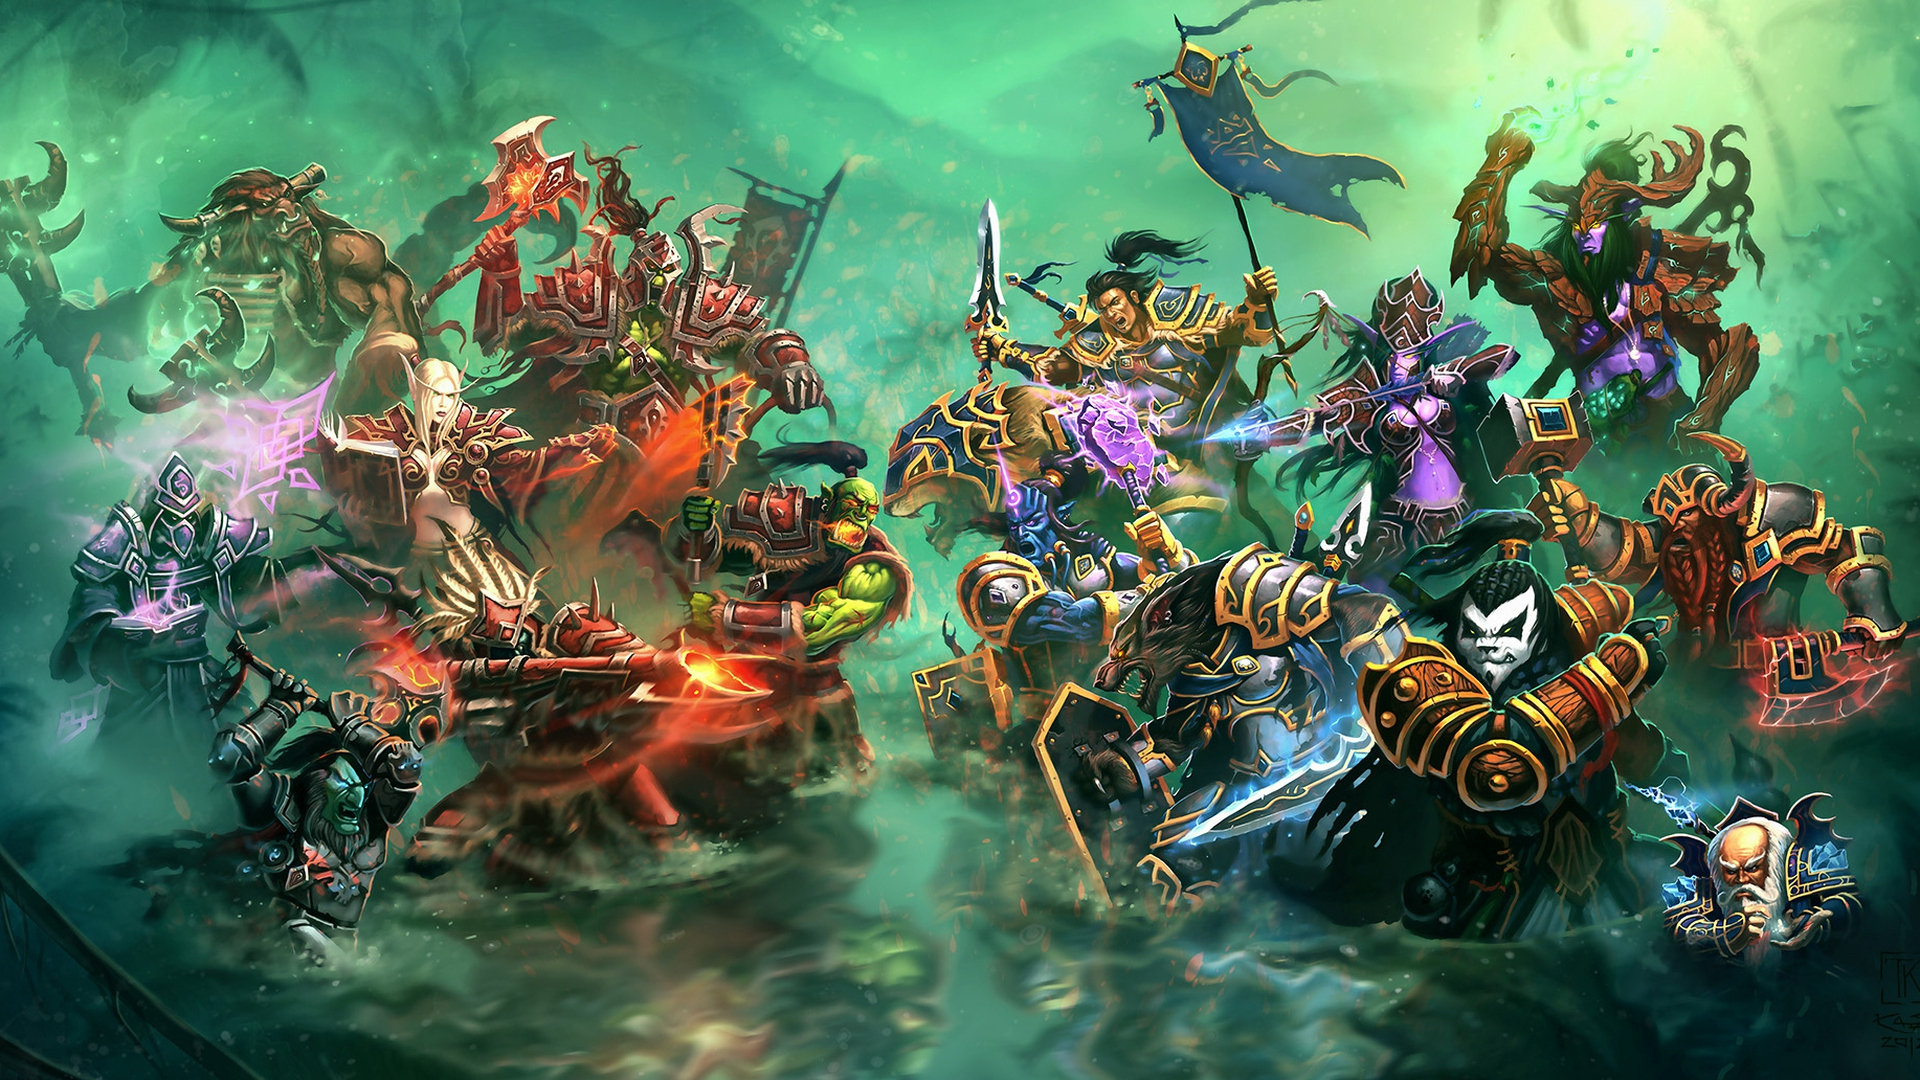 Fondos De Pantalla 1920x1080 World Of Warcraft Batalla